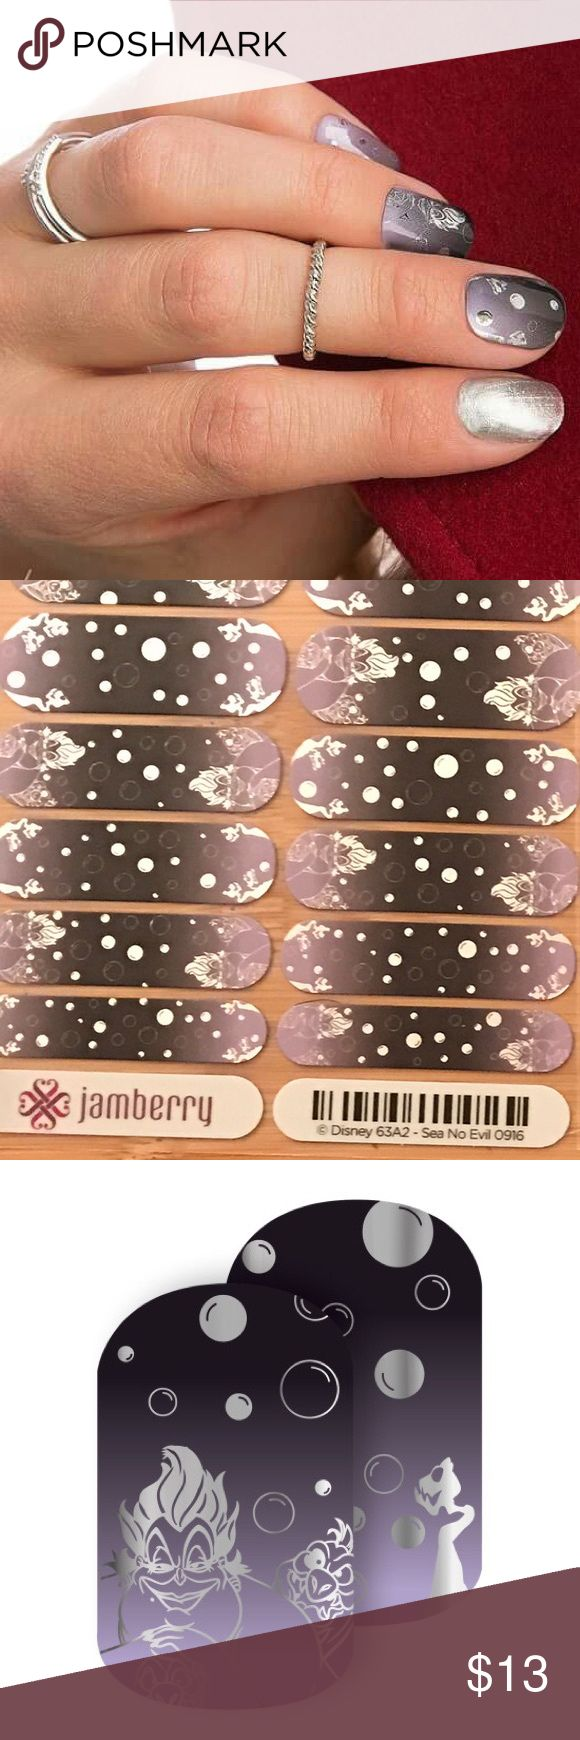 Jamberry Disney Villains Ursula Sea No Evil Full Jamberry Disney Villains Ursula Sea No Evil Full Sheet, From The Little Mermaid, these metallic purple wraps are made with beautiful silver hue and purple, bubbles and print of Ursula. This is a whole Sheet. 10% off of 2 or more items - these are perfect for bundles! Disney Accessories